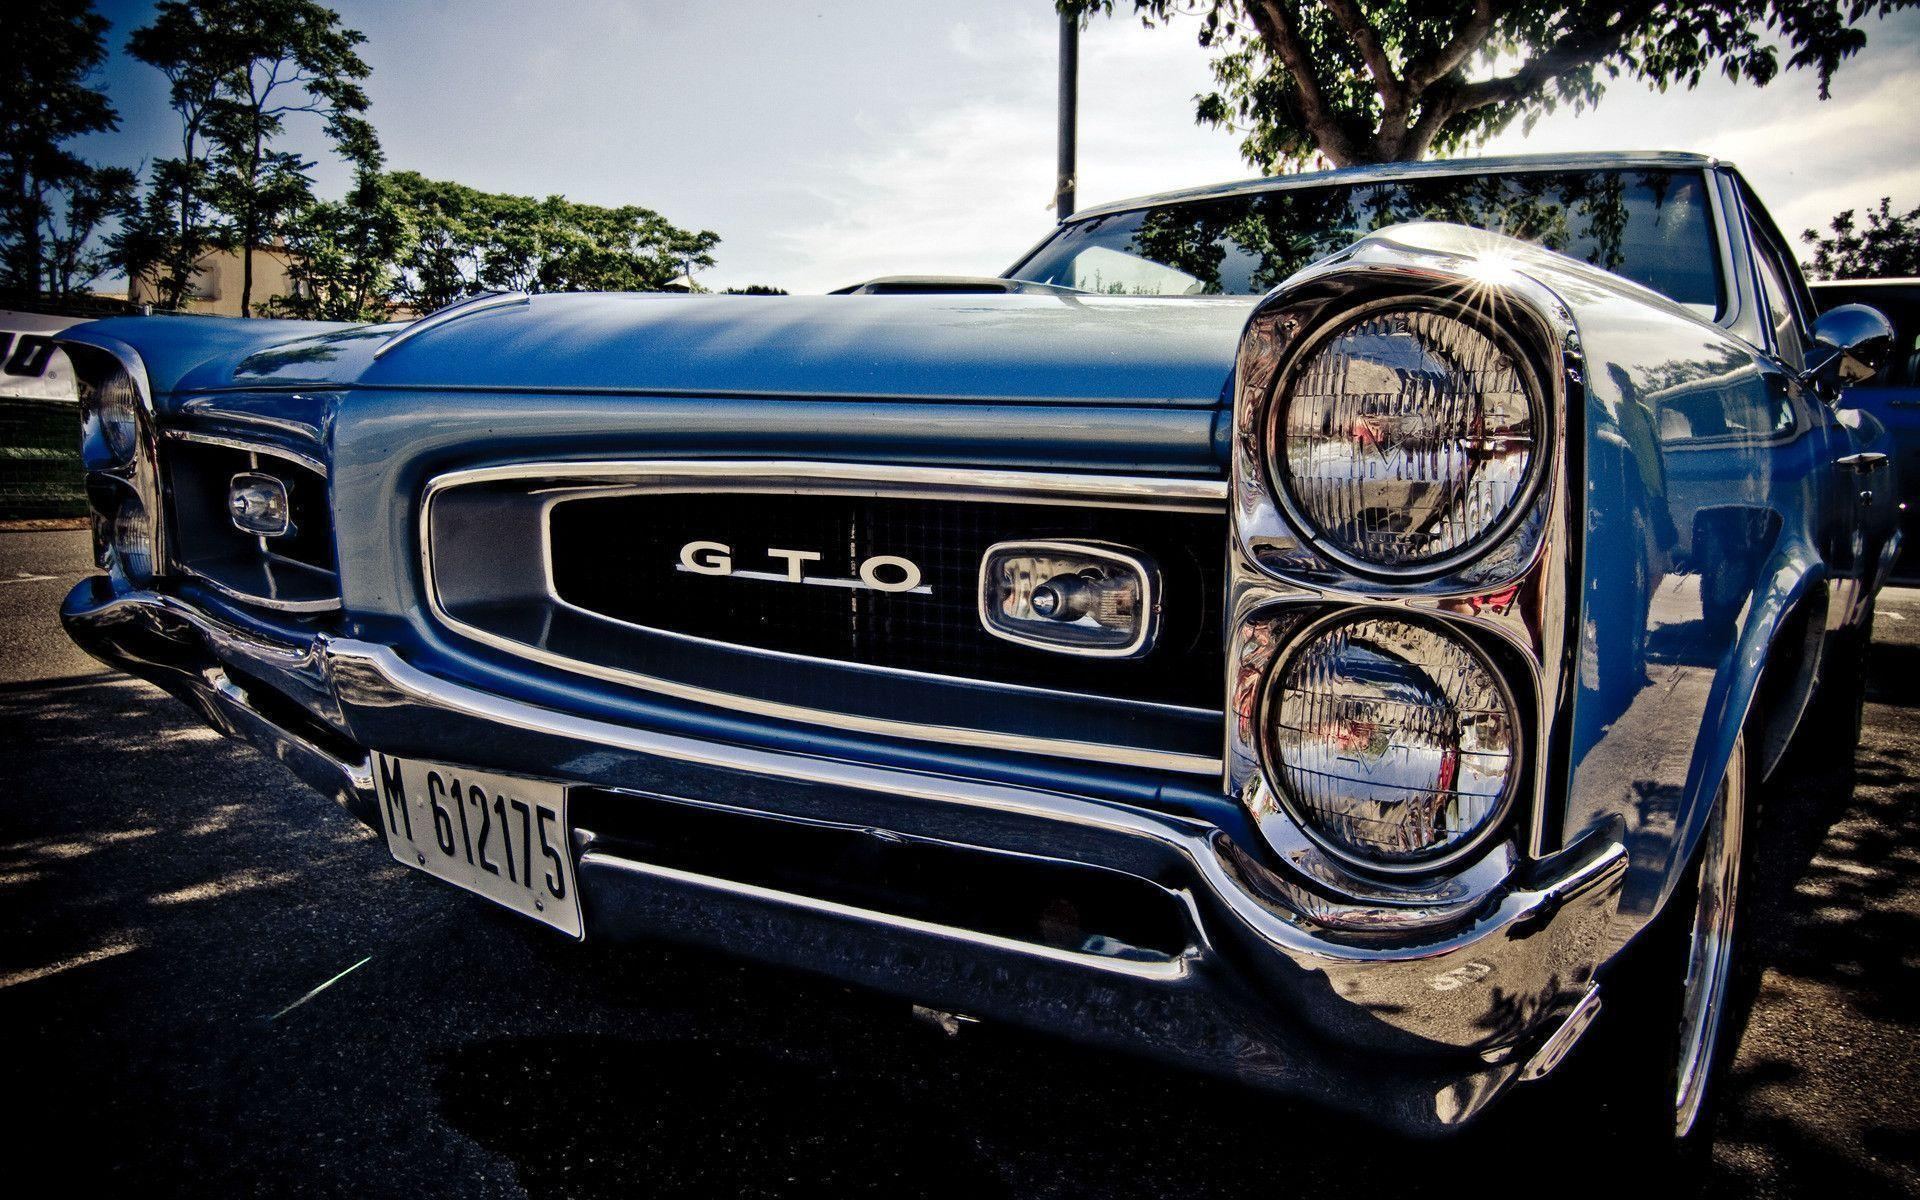 Pontiac GTO headlights shining from the sun